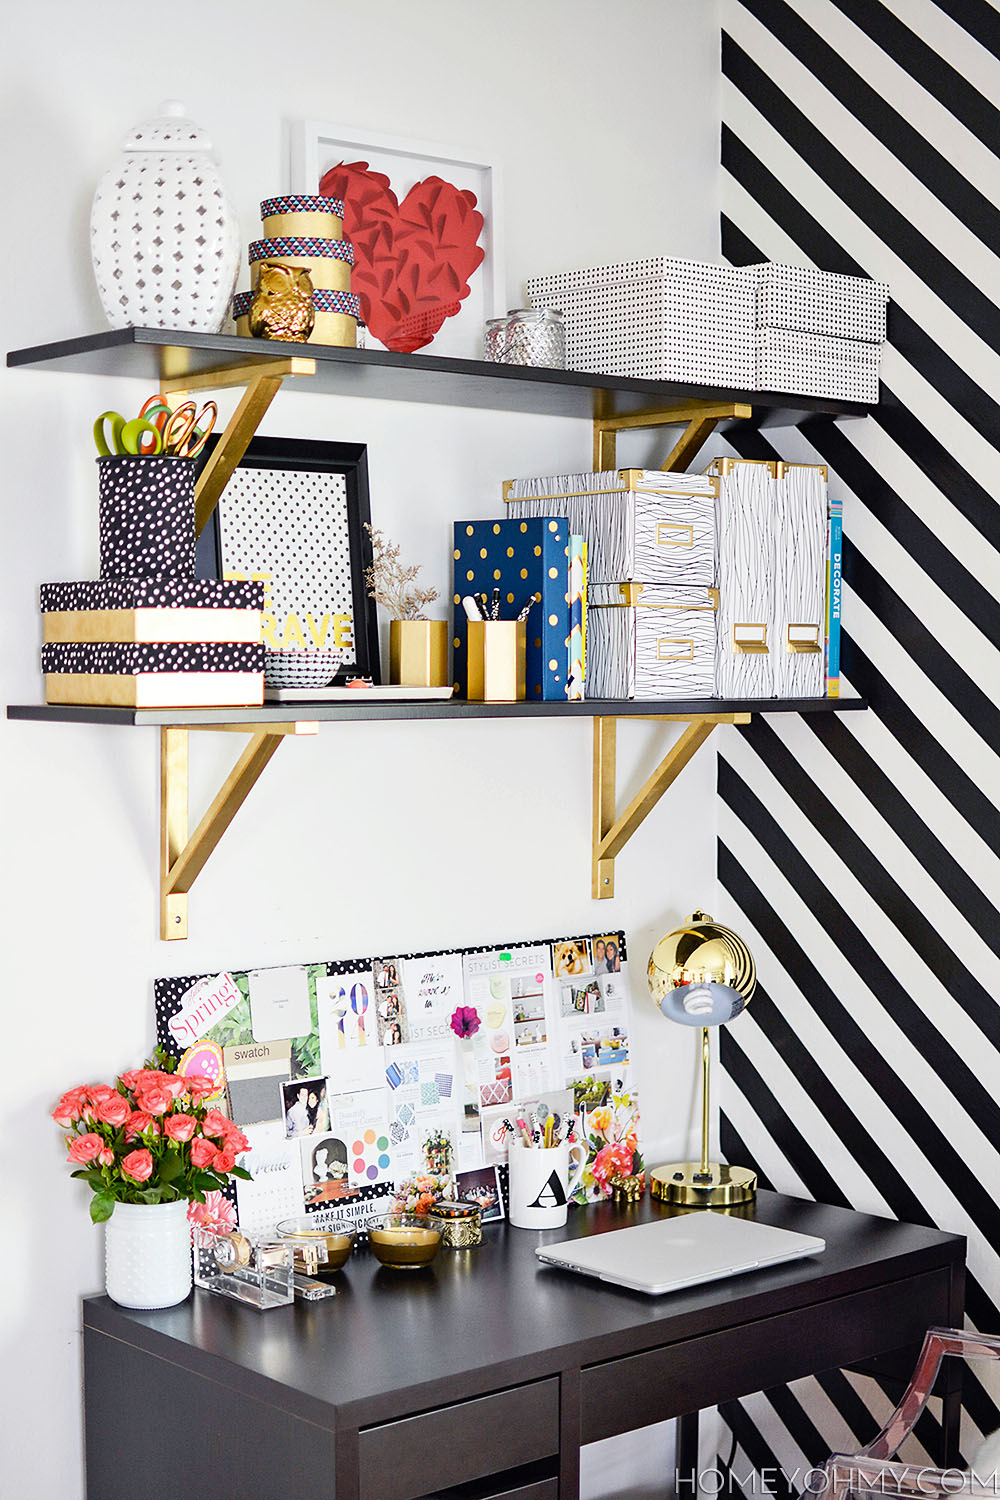 Get Your Home In Order With These 50 DIY Organization Ideas